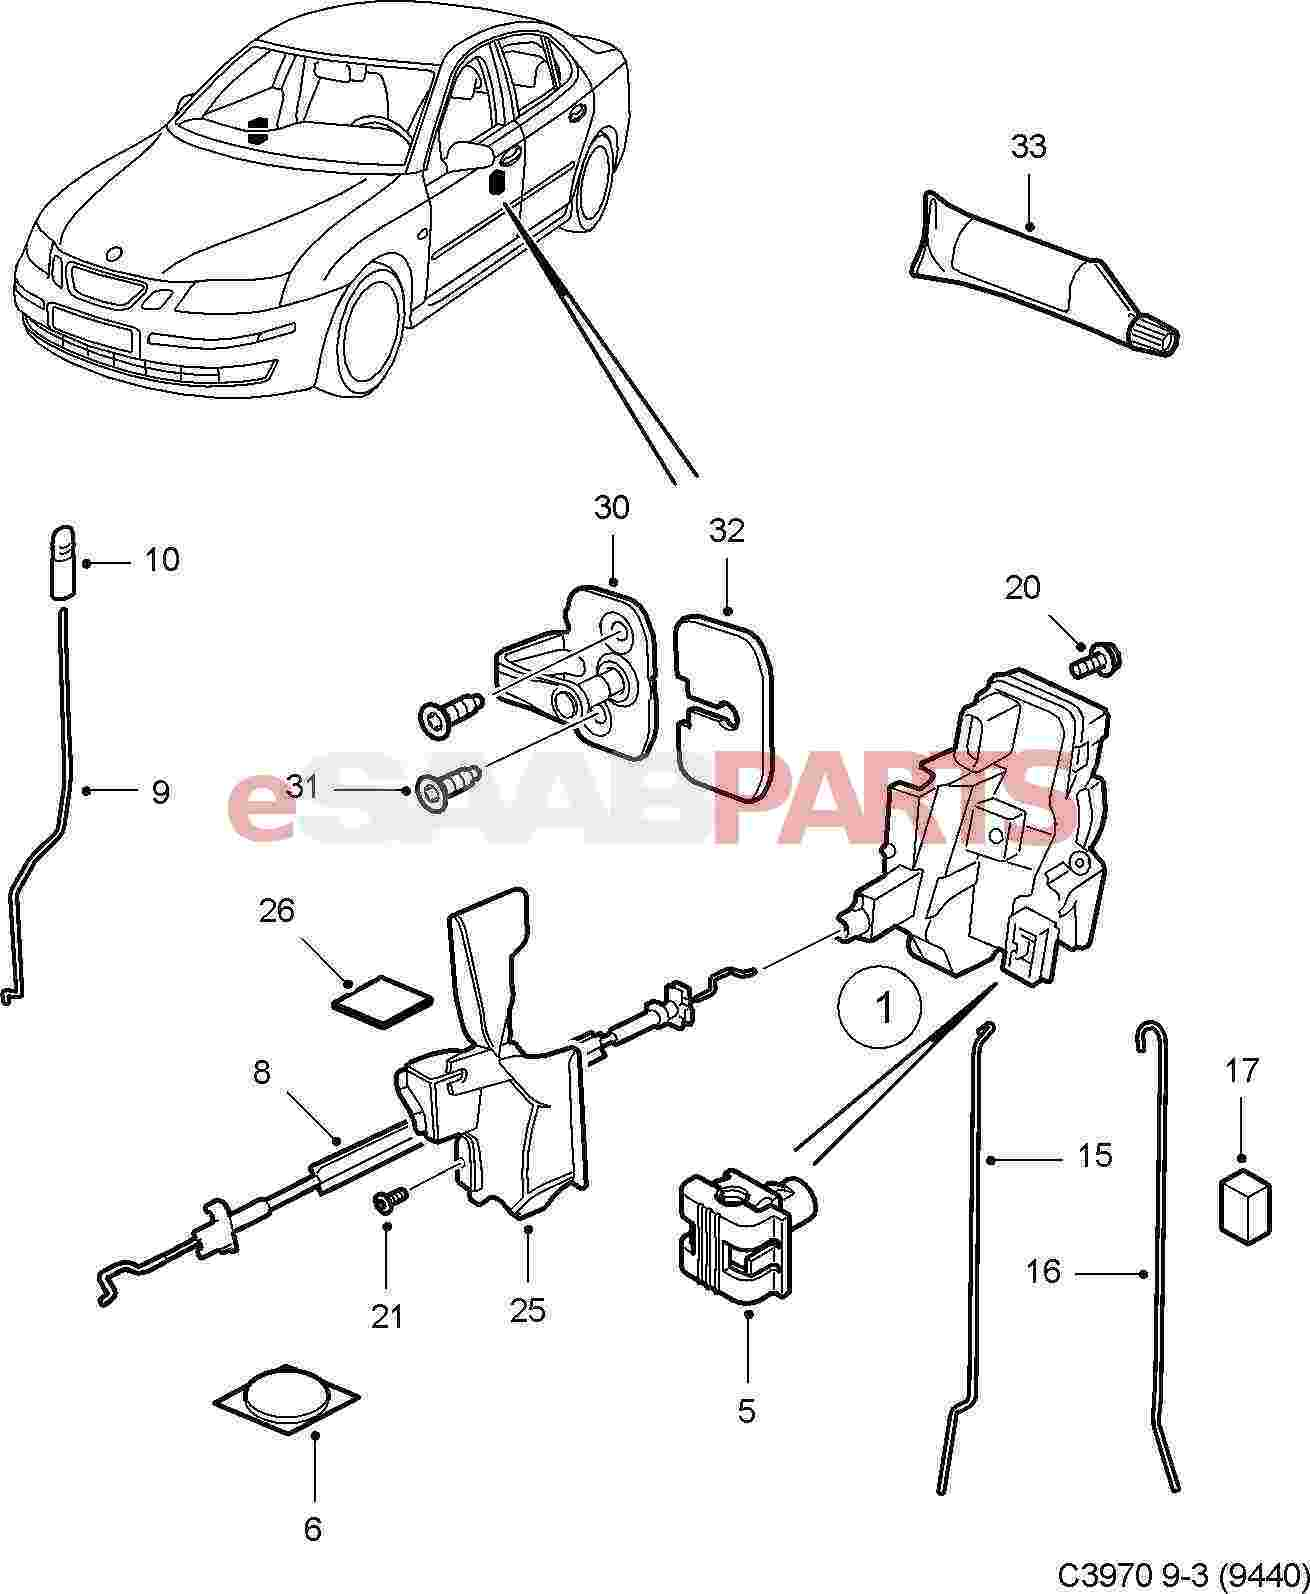 2008 ford taurus x part diagram